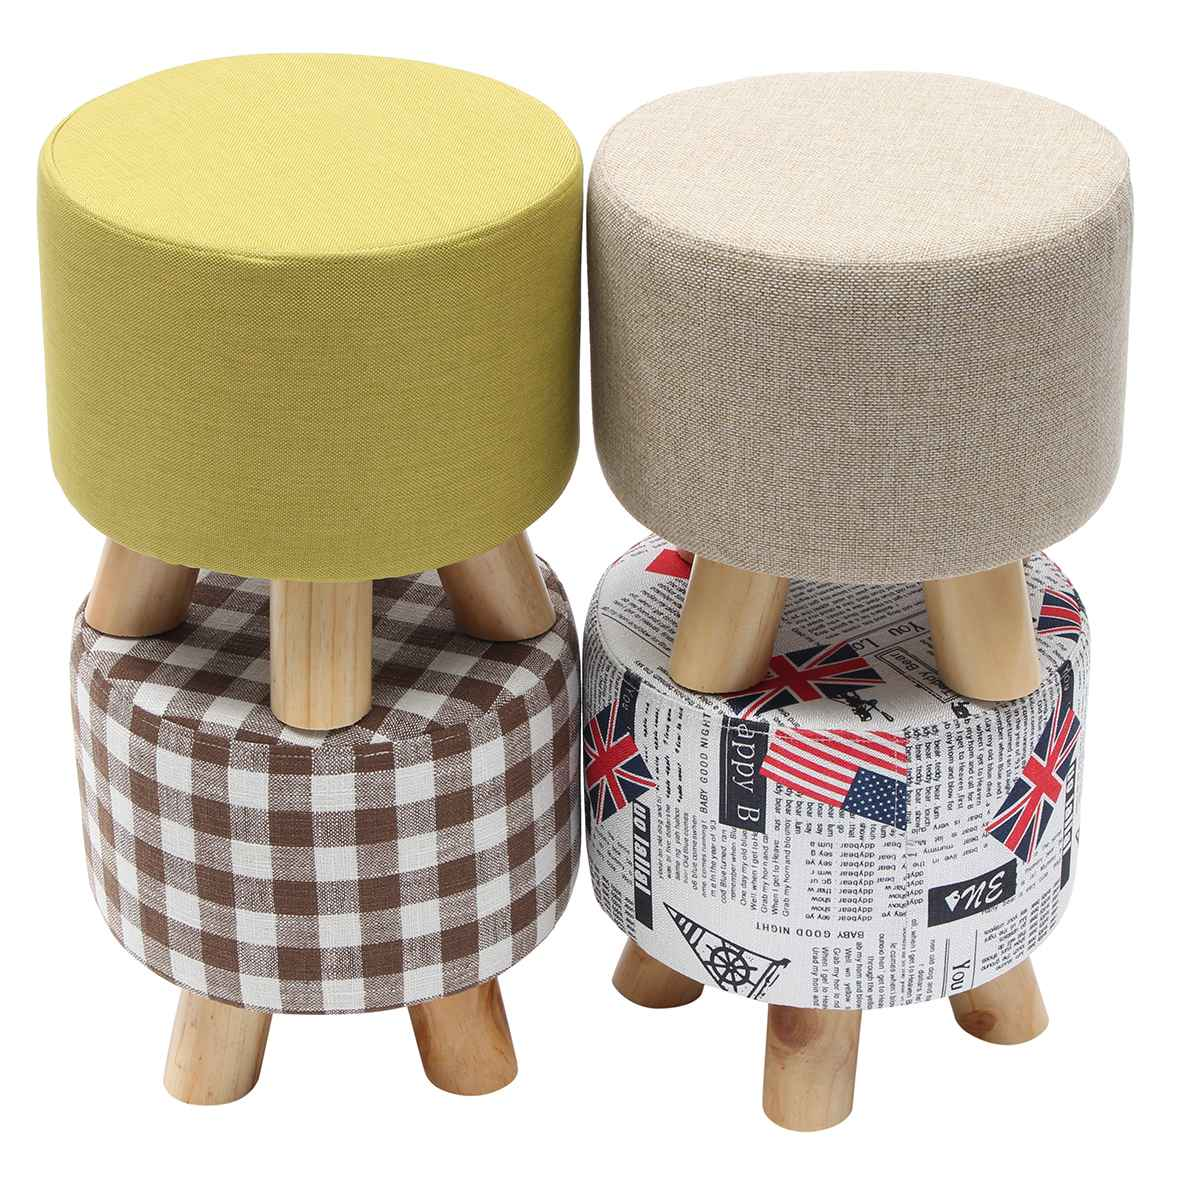 Round Modern Solid Pine Wooden Footstool Ottomans Nordic Pouffe Stool Upholstered Fabric Foot Rest Padded Seat Living Room Decor